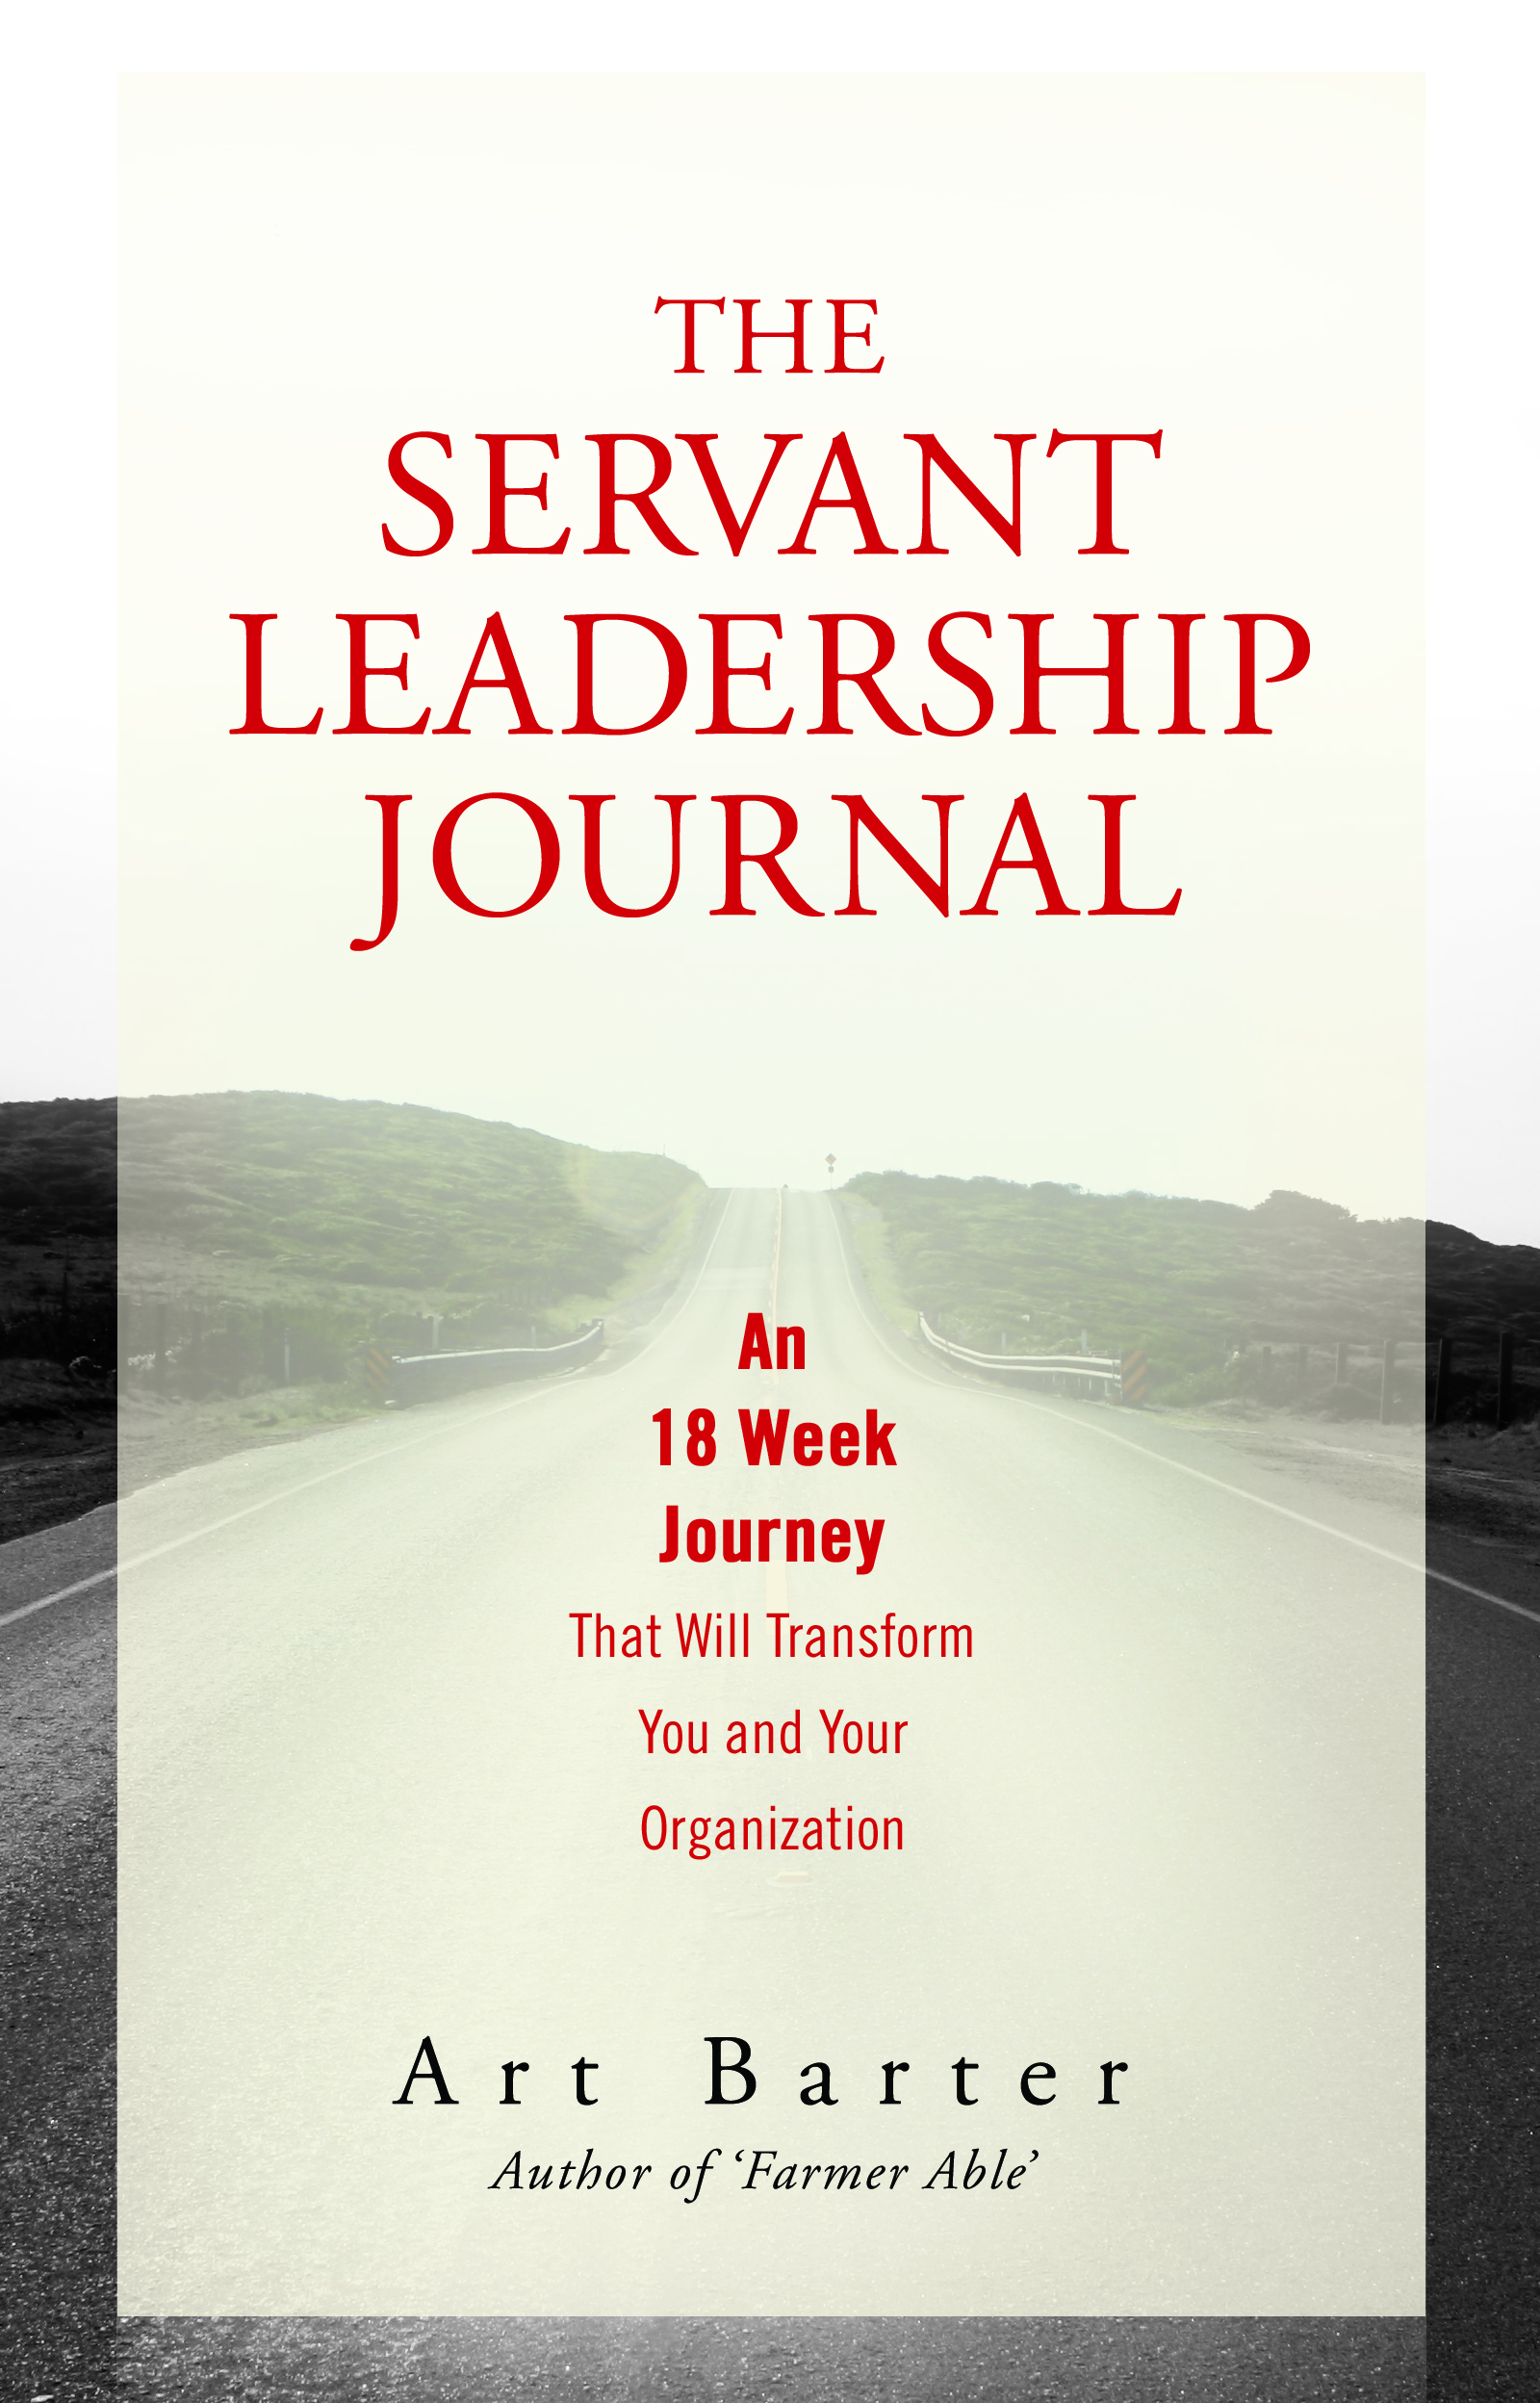 From Command and Control to Servant Leadership Art